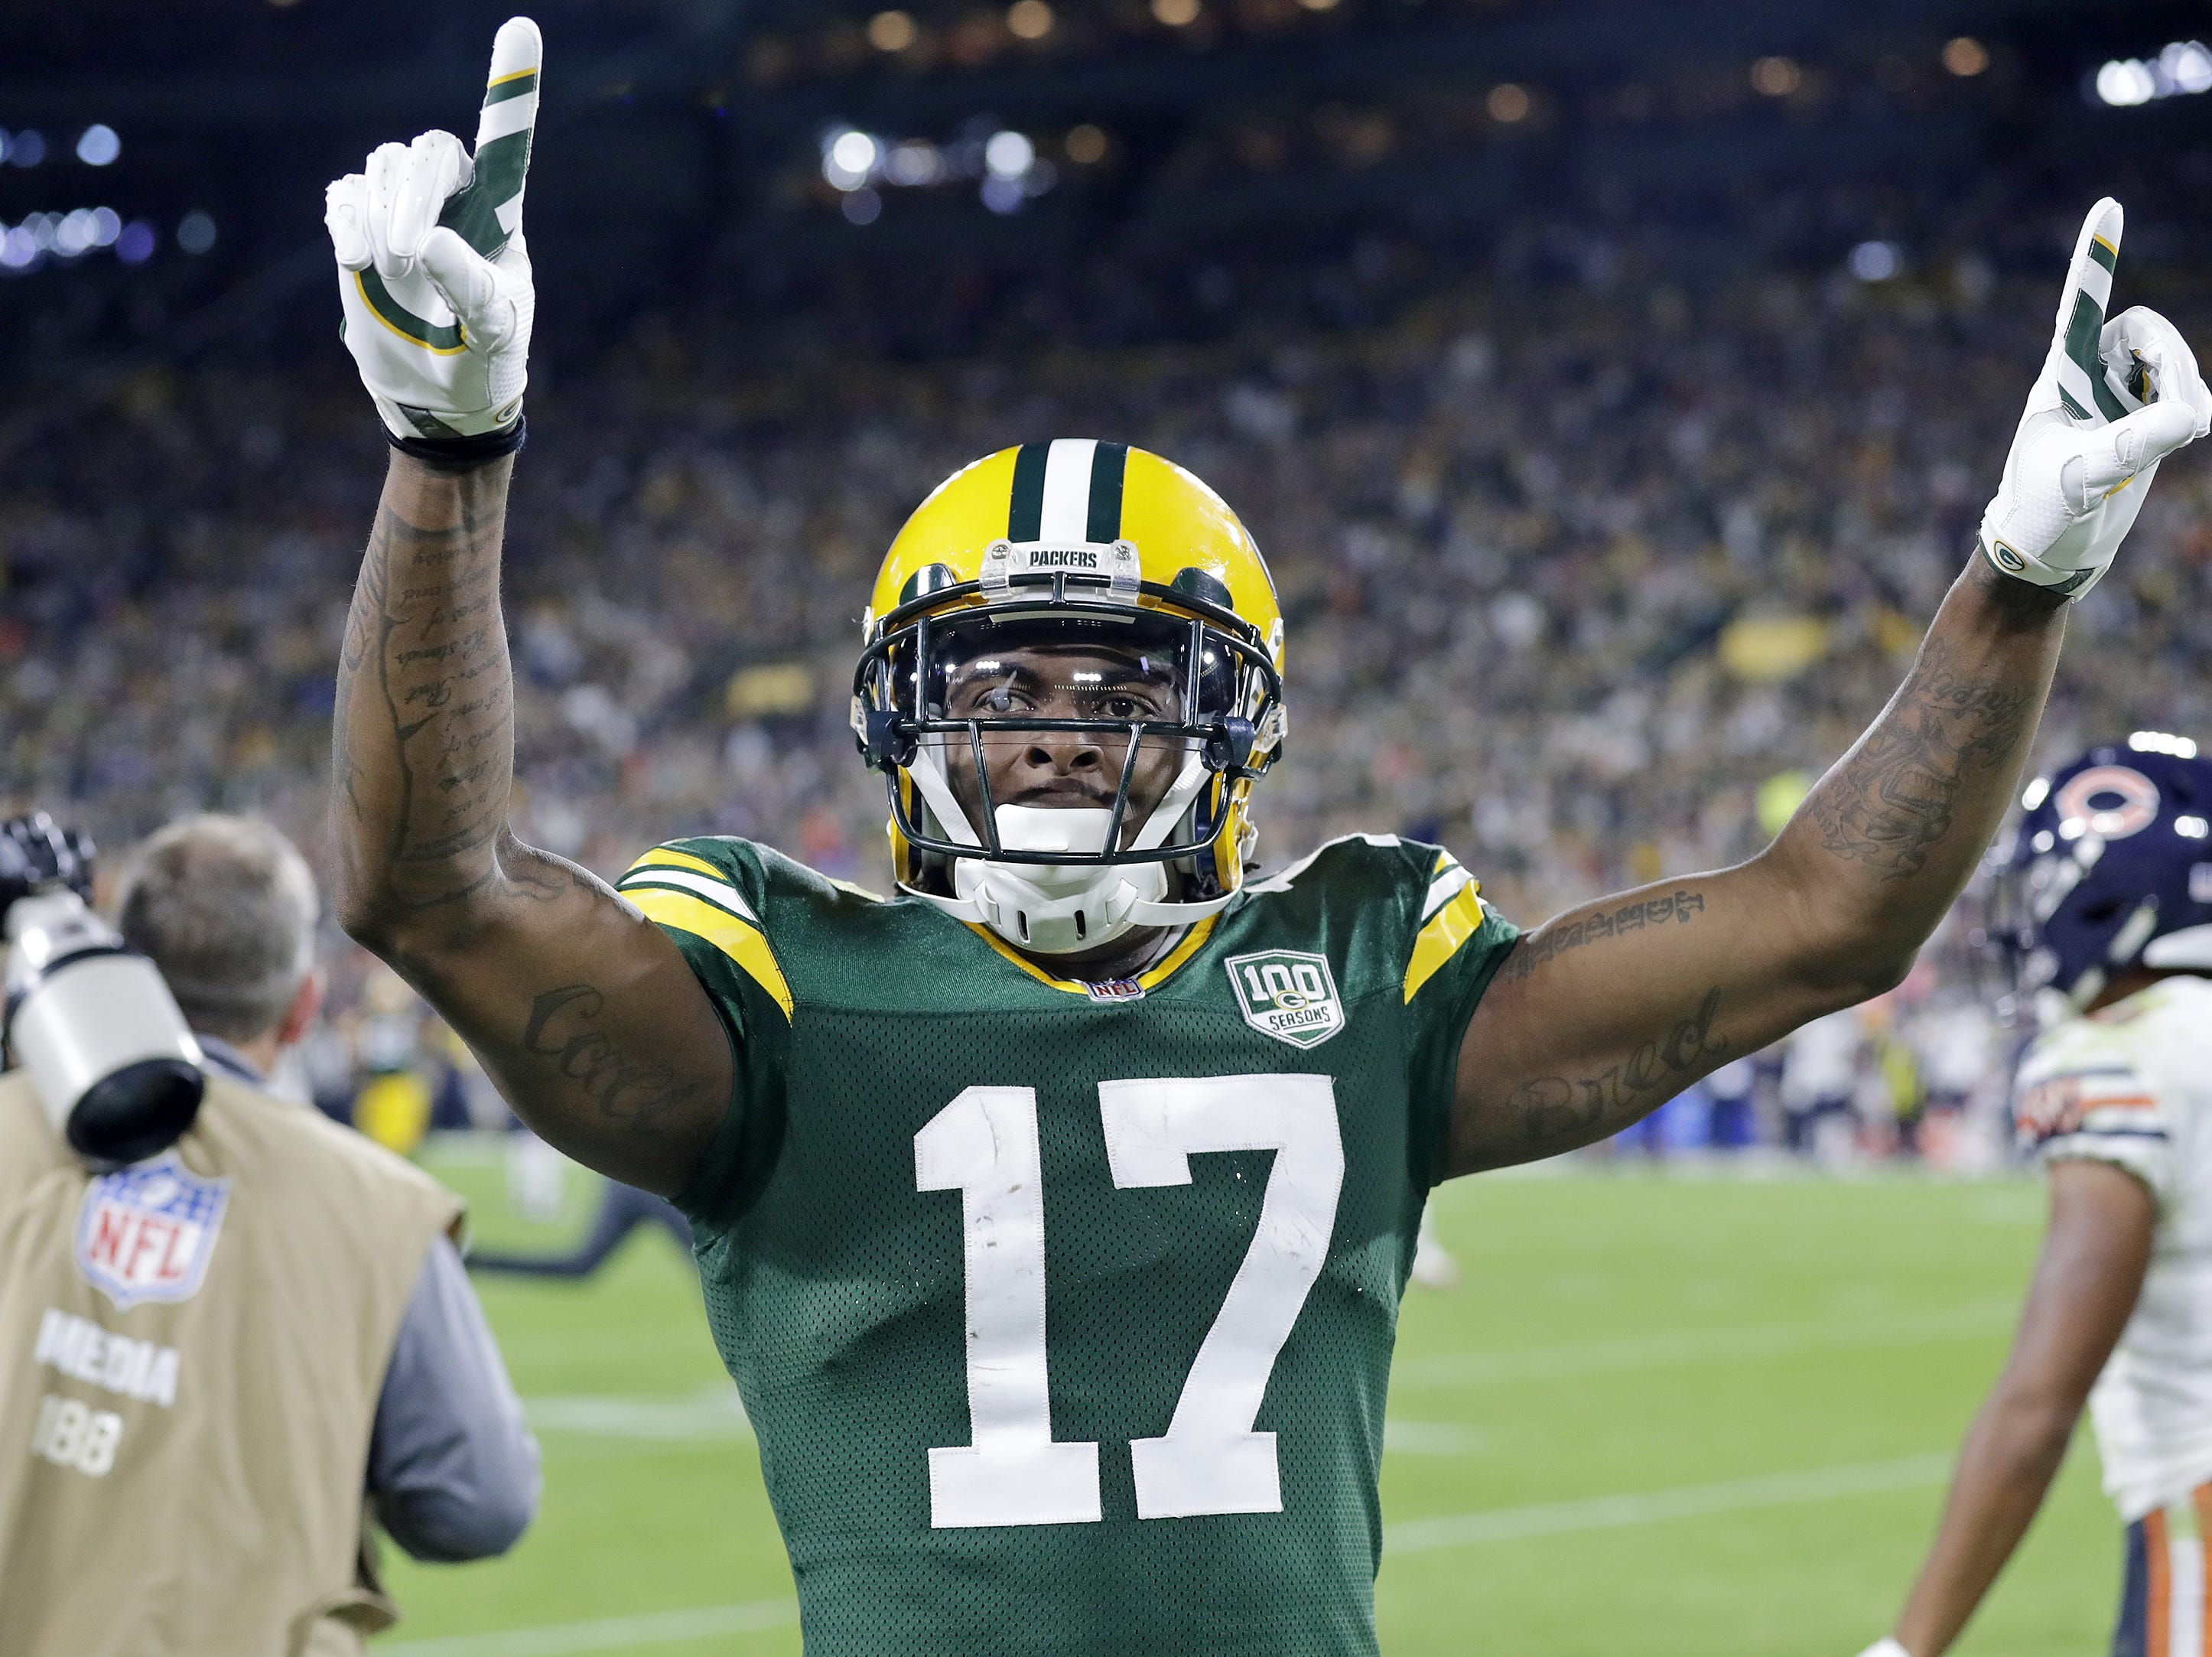 Green Bay Packers wide receiver Davante Adams (17) celebrates at the end of the game against the Chicago Bears at Lambeau Field on Sunday, September 9, 2018 in Green Bay, Wis.